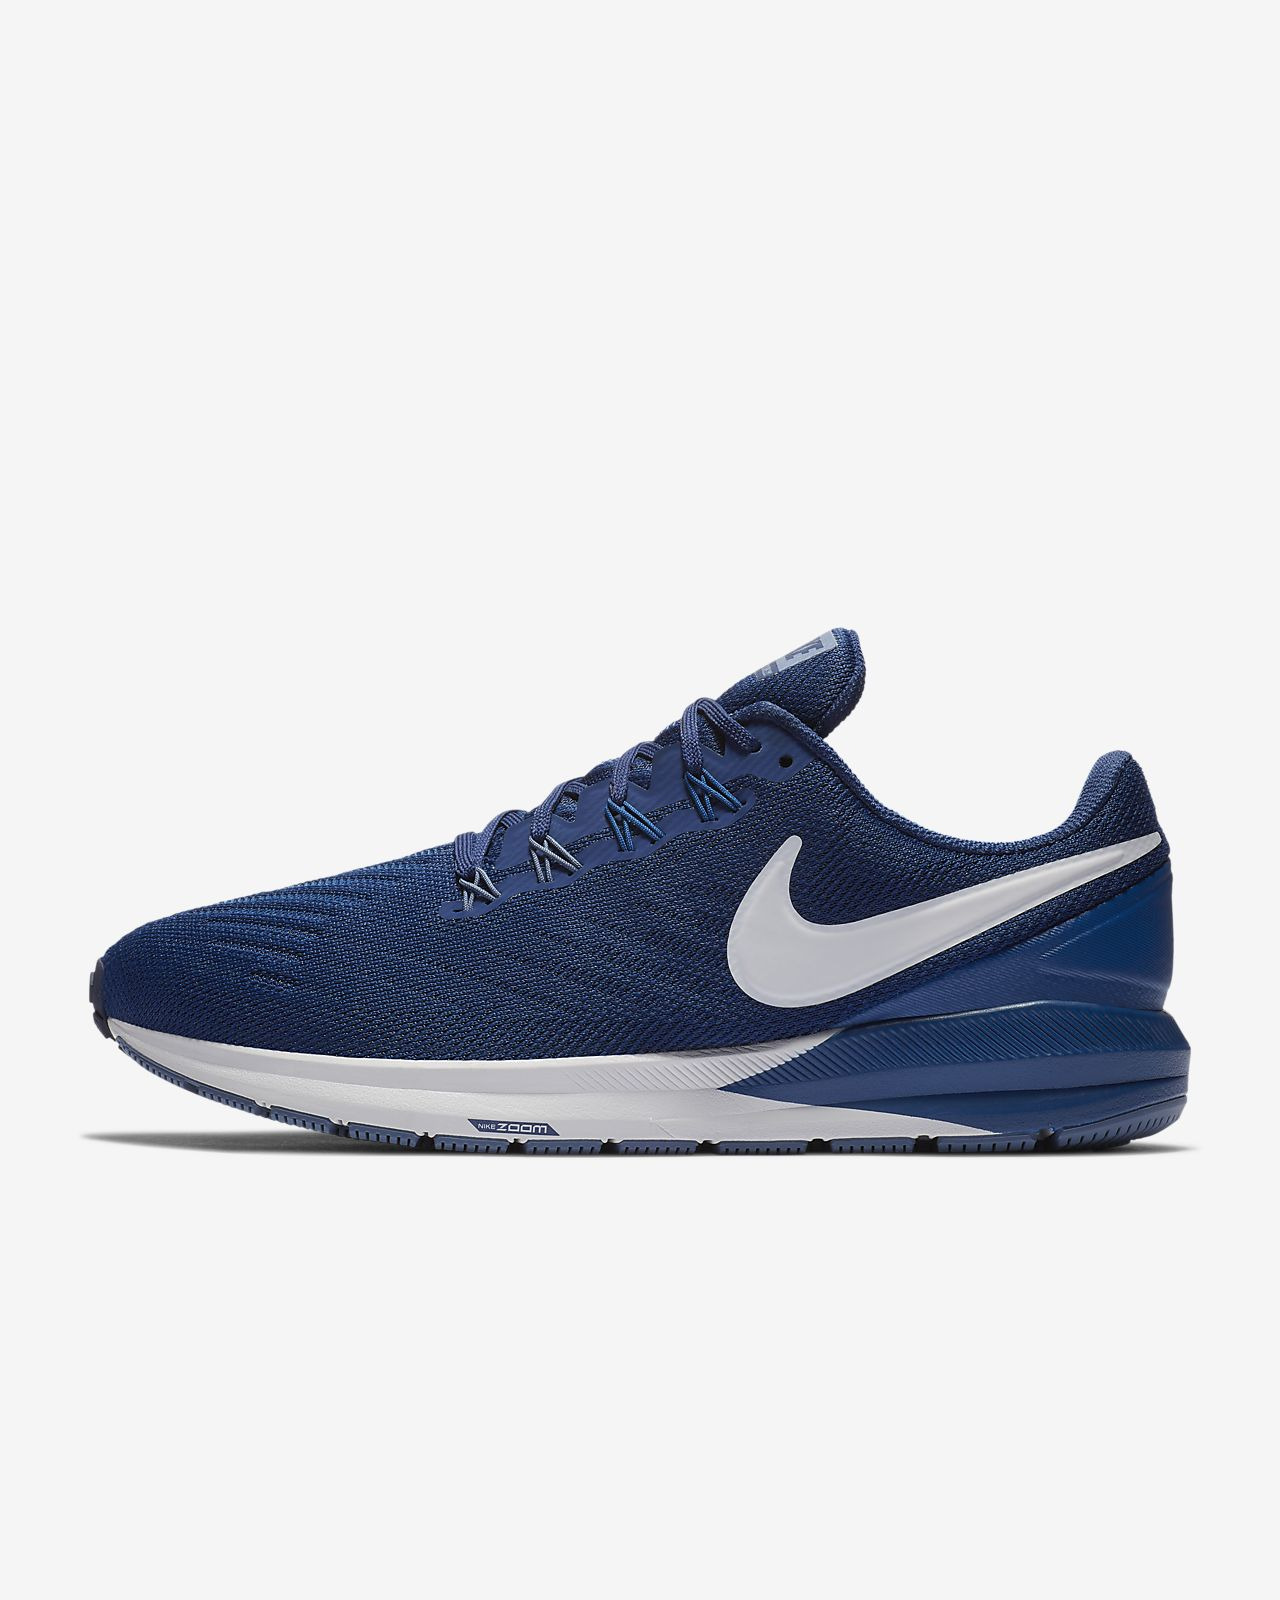 Chaussure de running Nike Air Zoom Structure 22 pour Homme (extra-large)